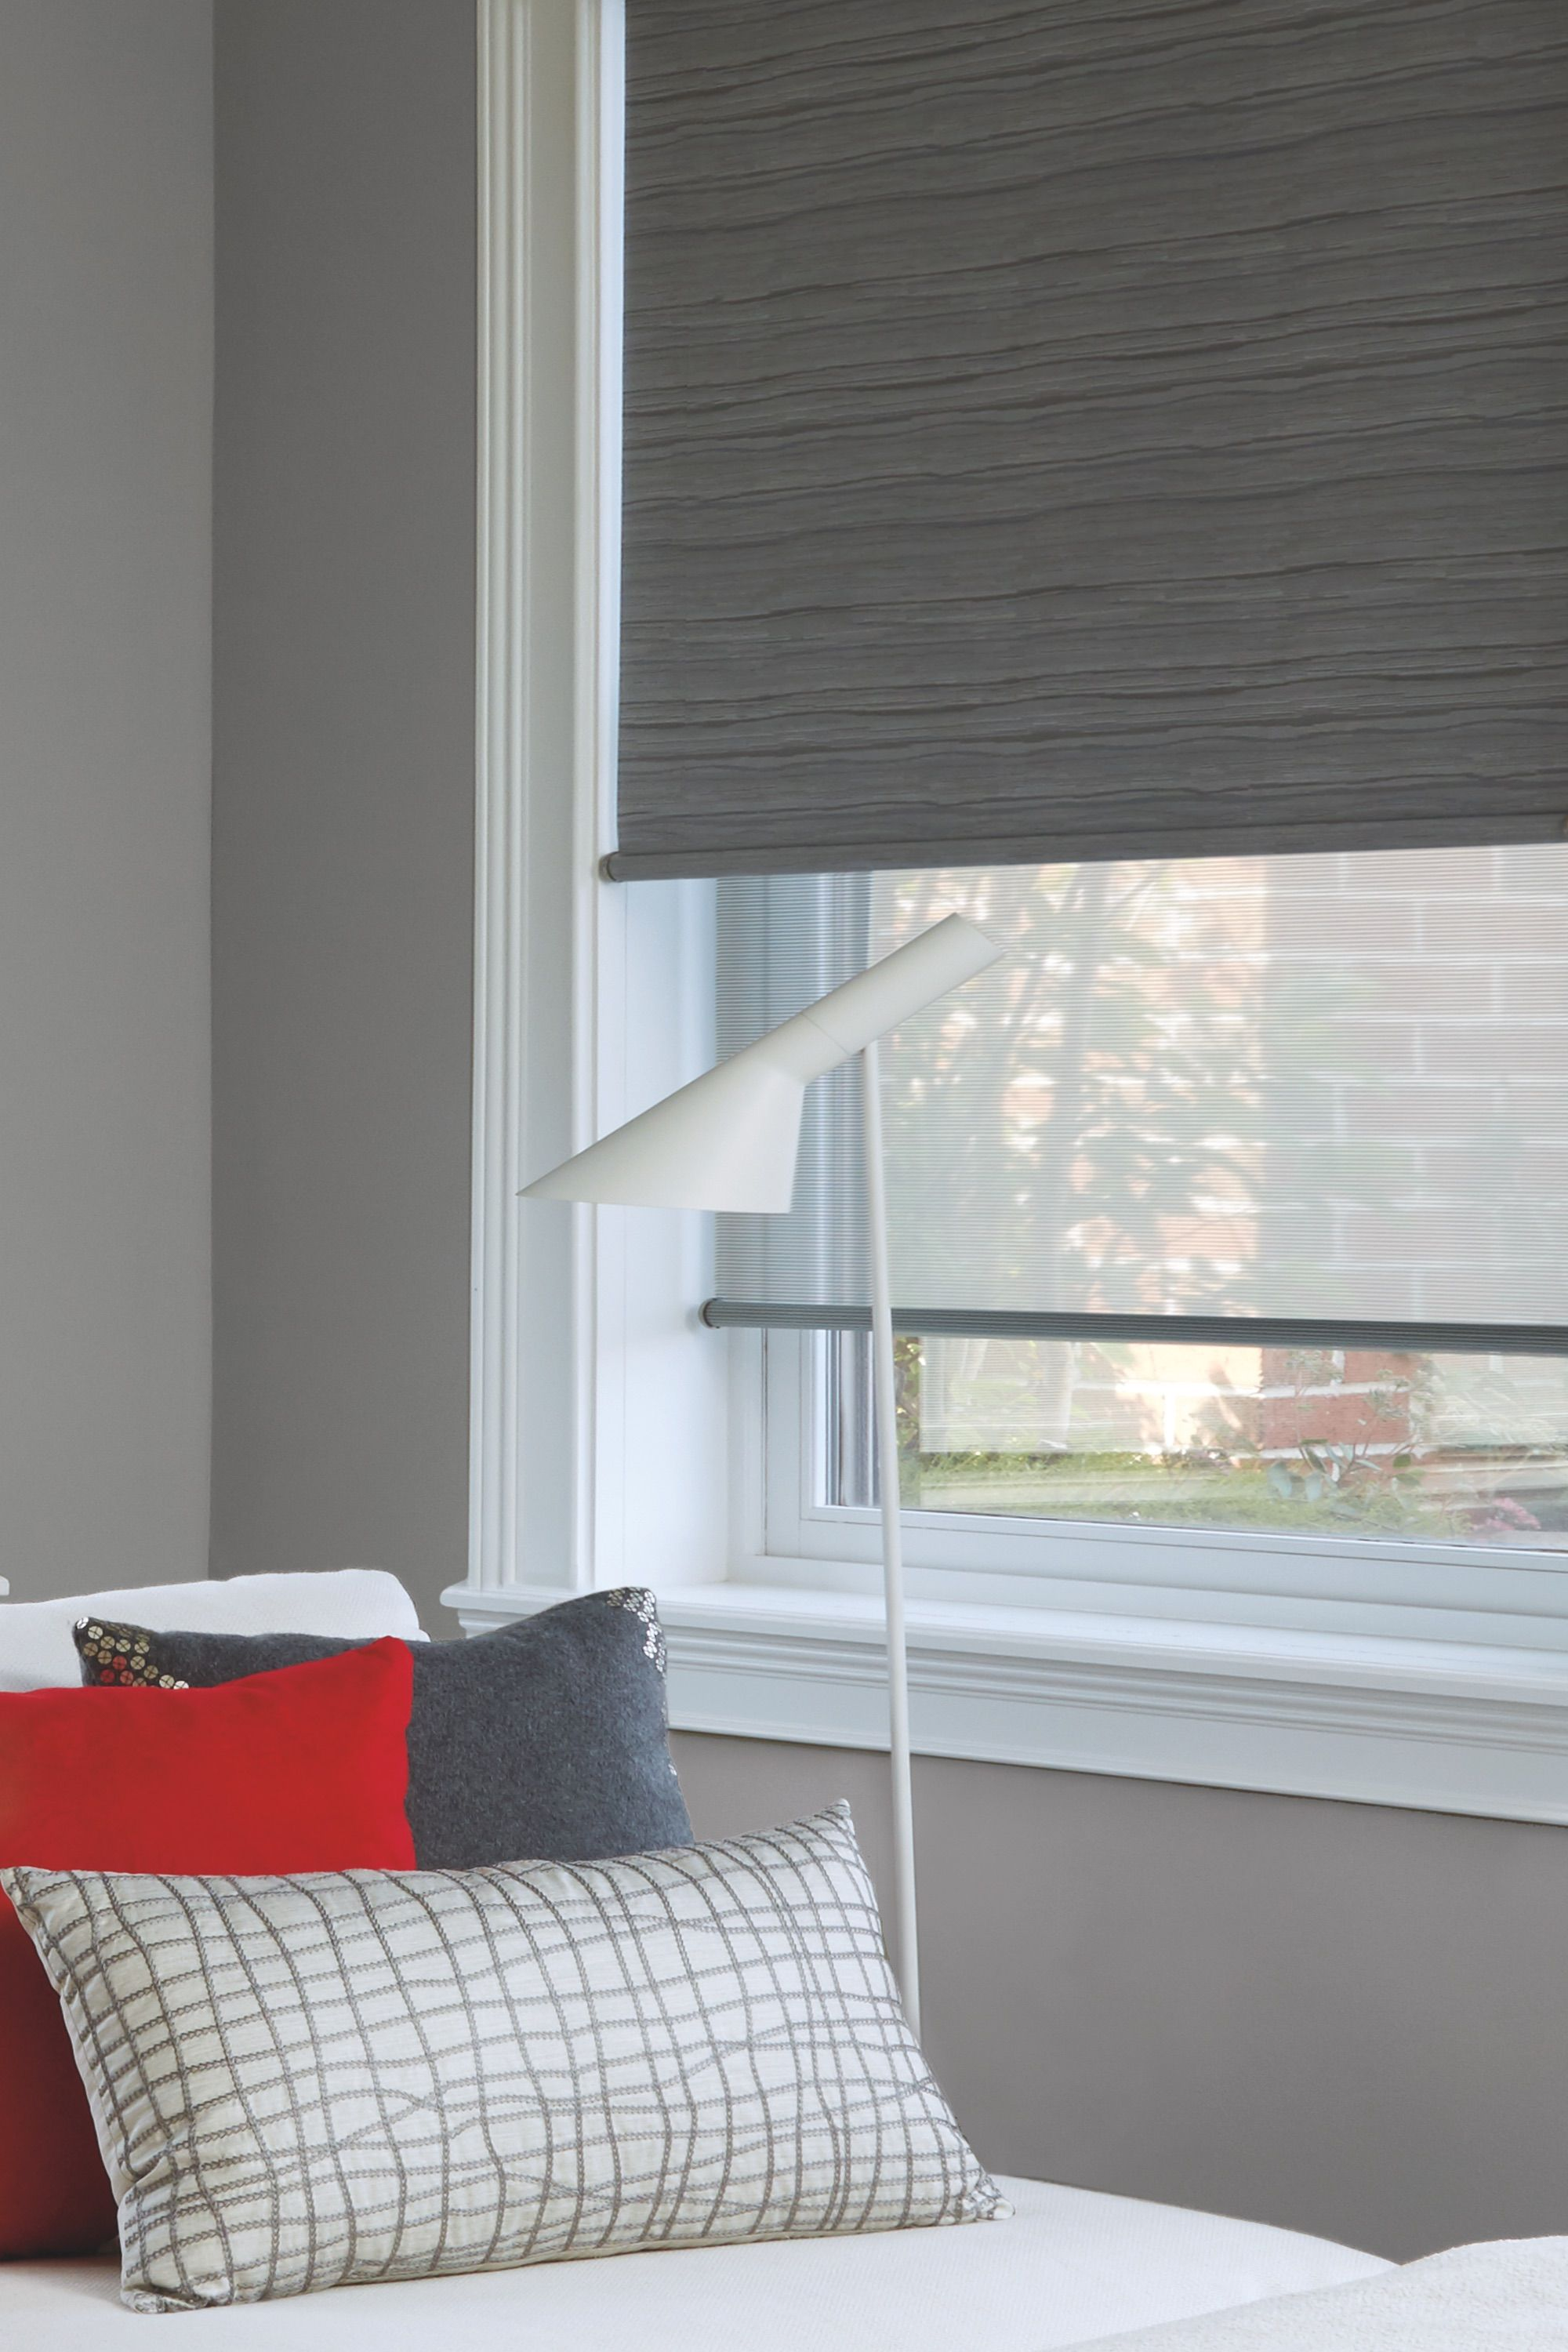 If You Love The View Through Of Screen Shades But Want Privacy At Night A Dual Roller Shade From Hu Roller Shades Living Room Shades Blinds Living Room Shades